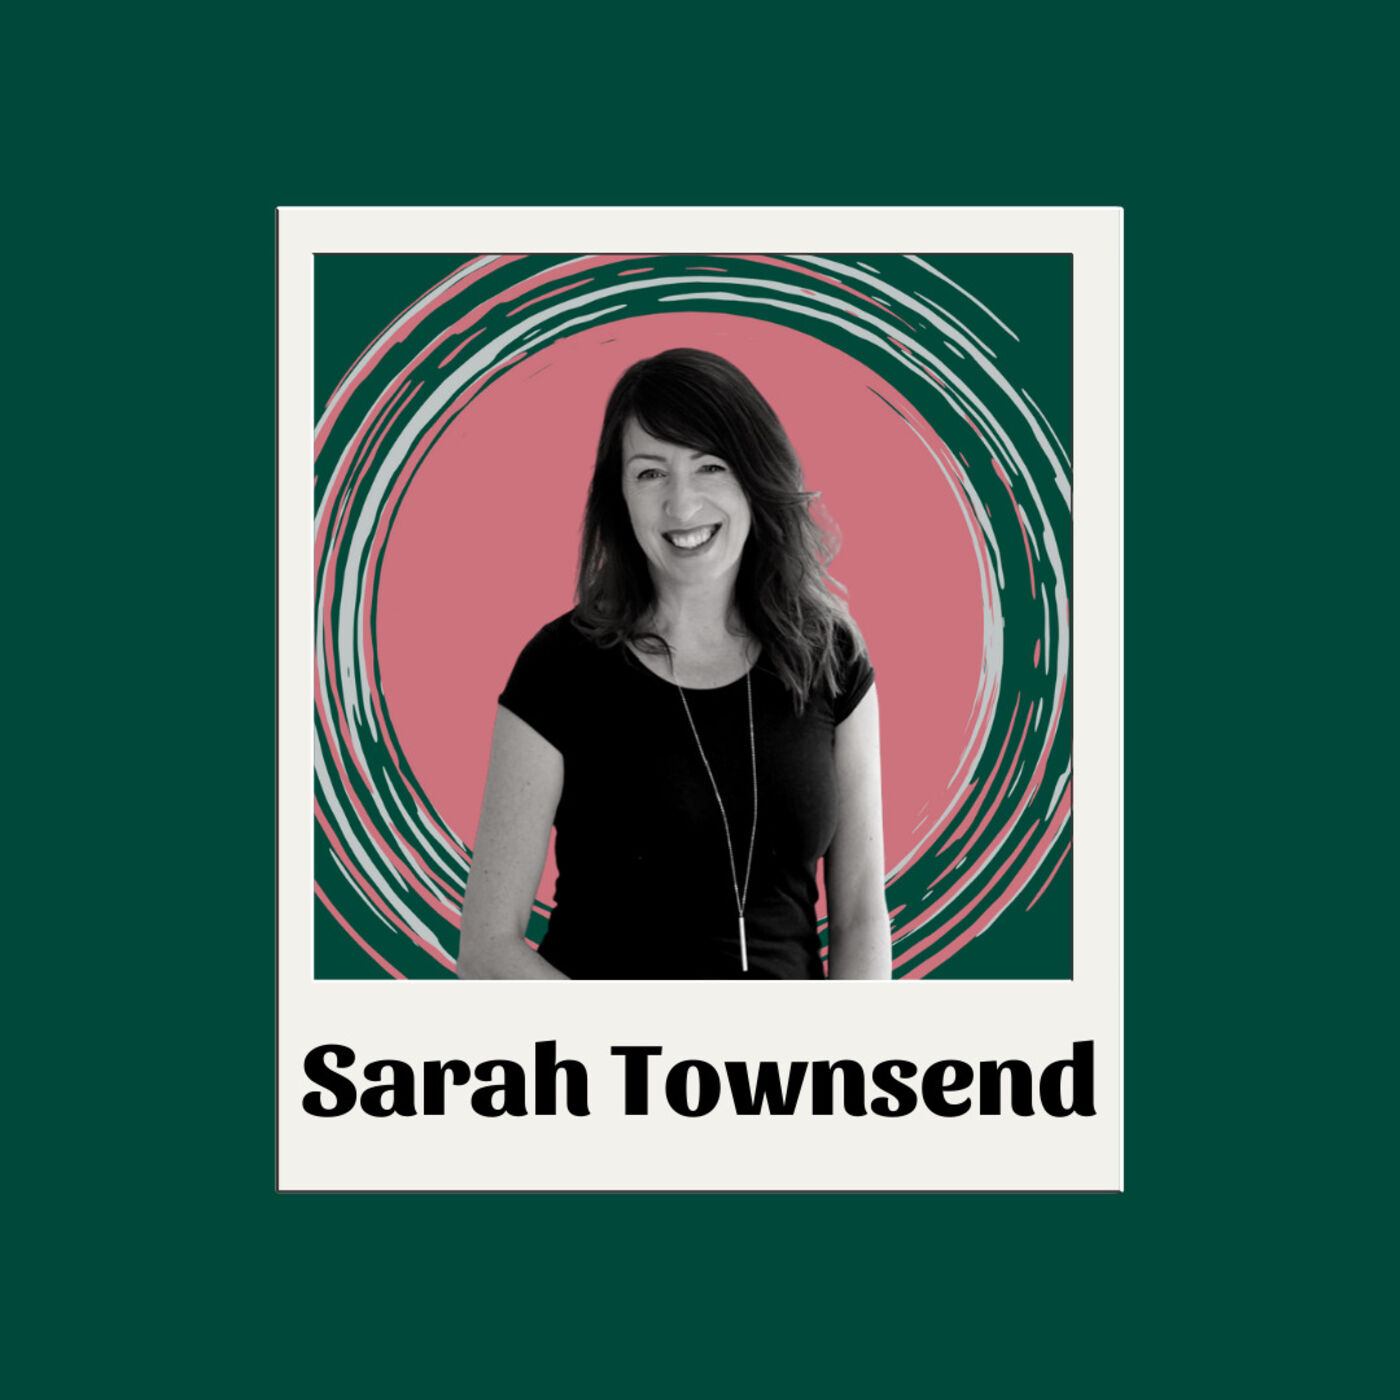 EP12 Sarah Townsend: Freelancing, coping with uncertainty and deglamourising the hustle